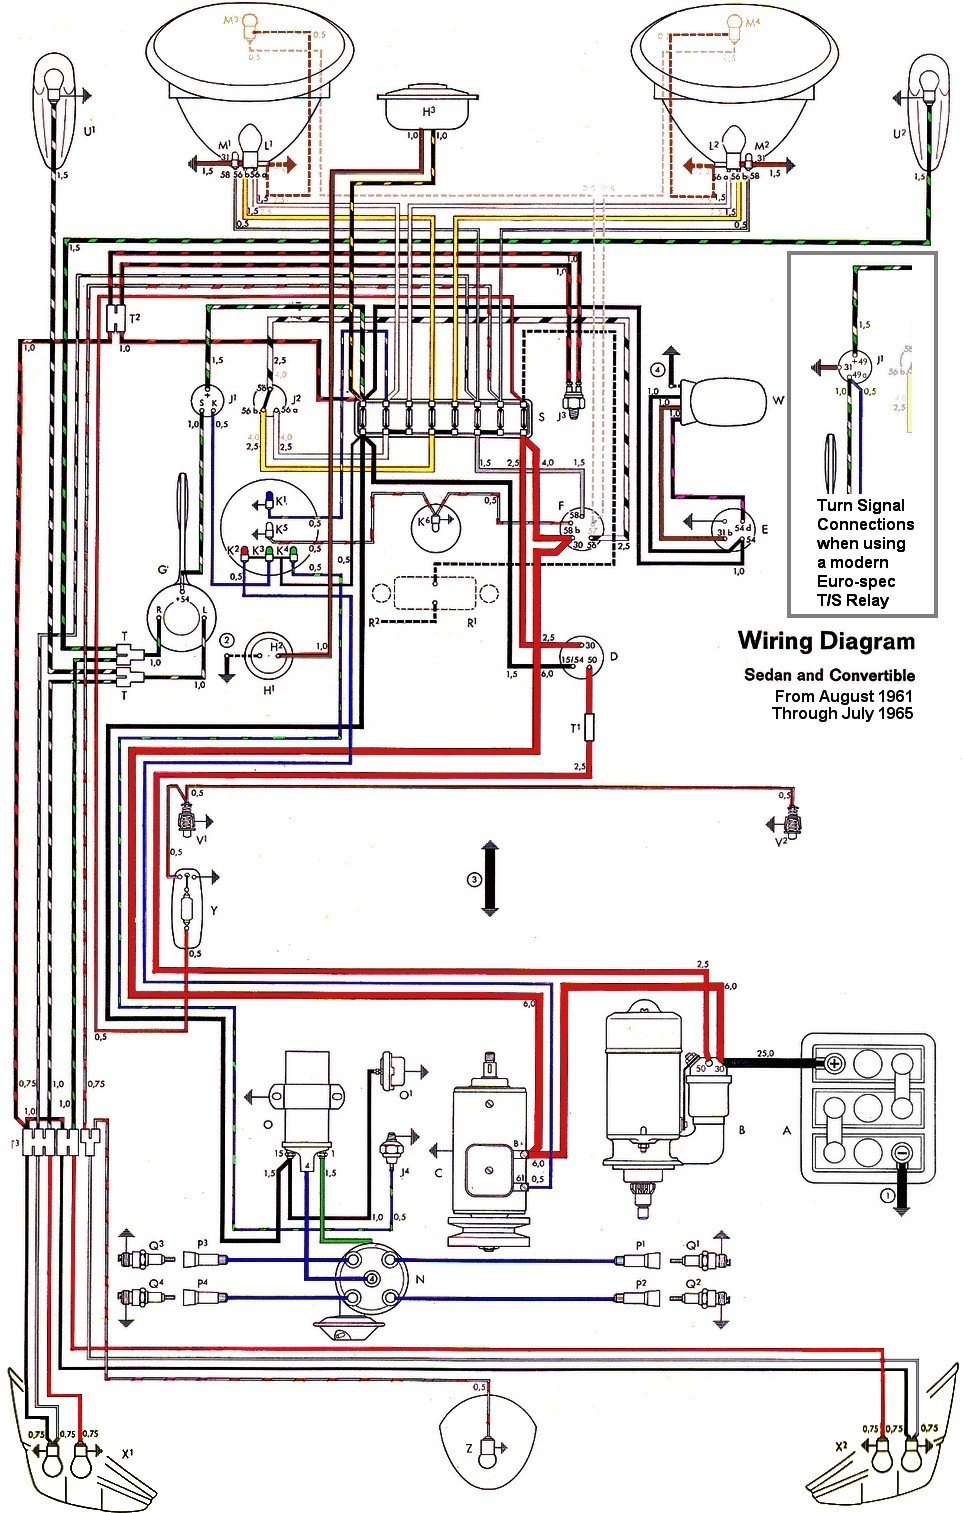 bug_62 65withinset wiring diagram vw beetle sedan and convertible 1961 1965 vw 1971 vw bus wiring diagram at mifinder.co